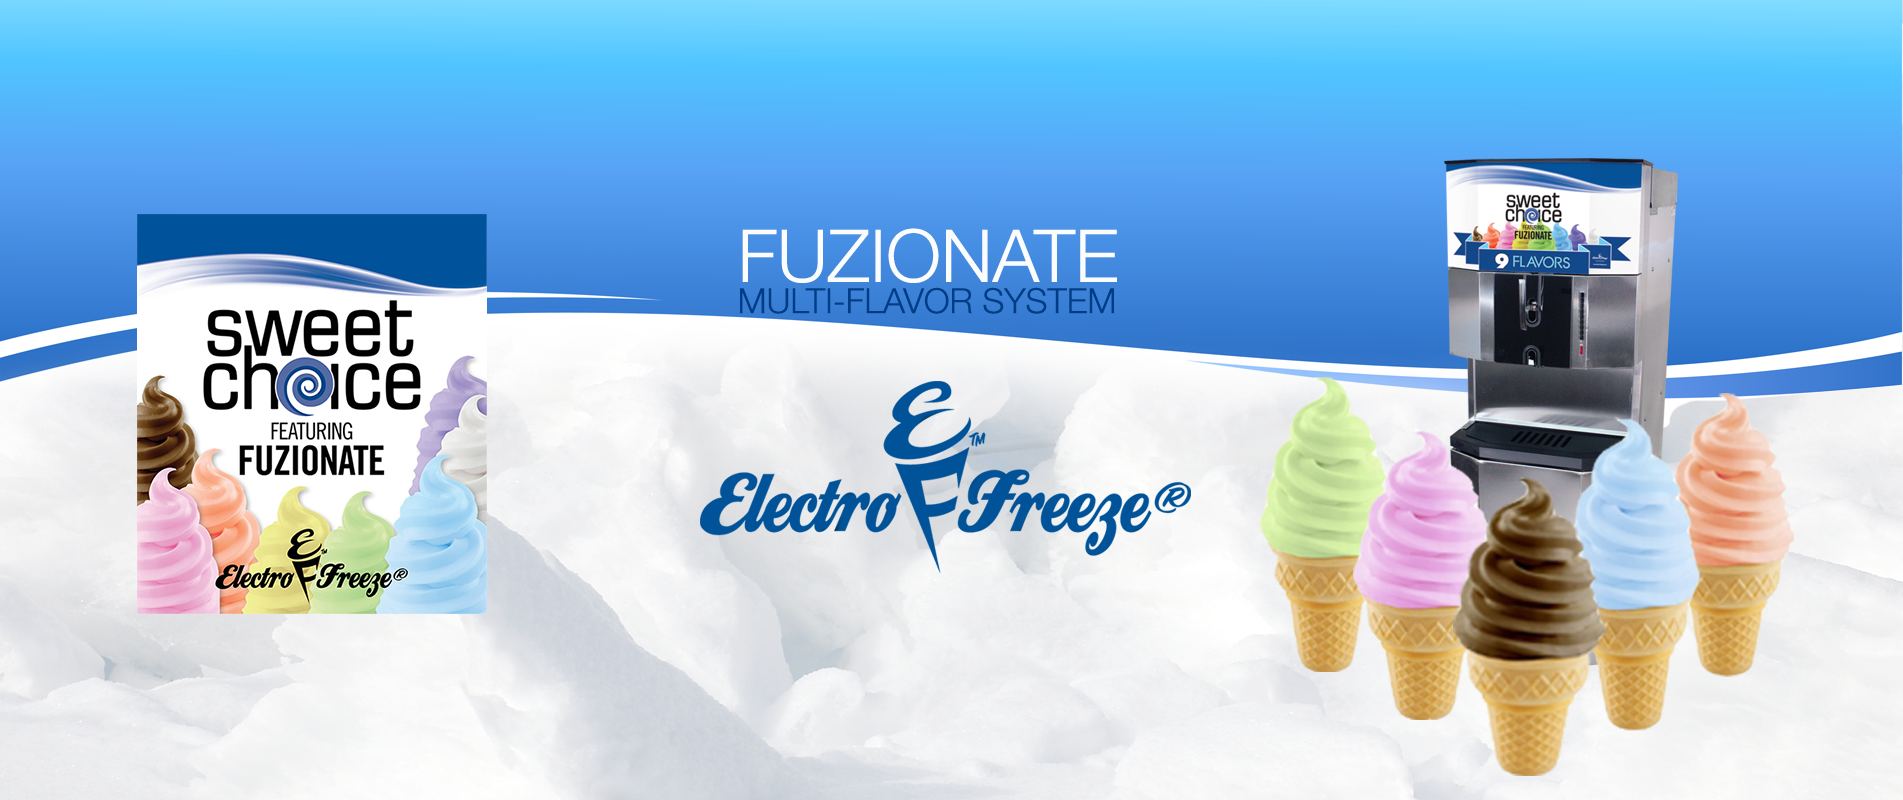 Electro Freeze Fuzionate Multi Flavor System